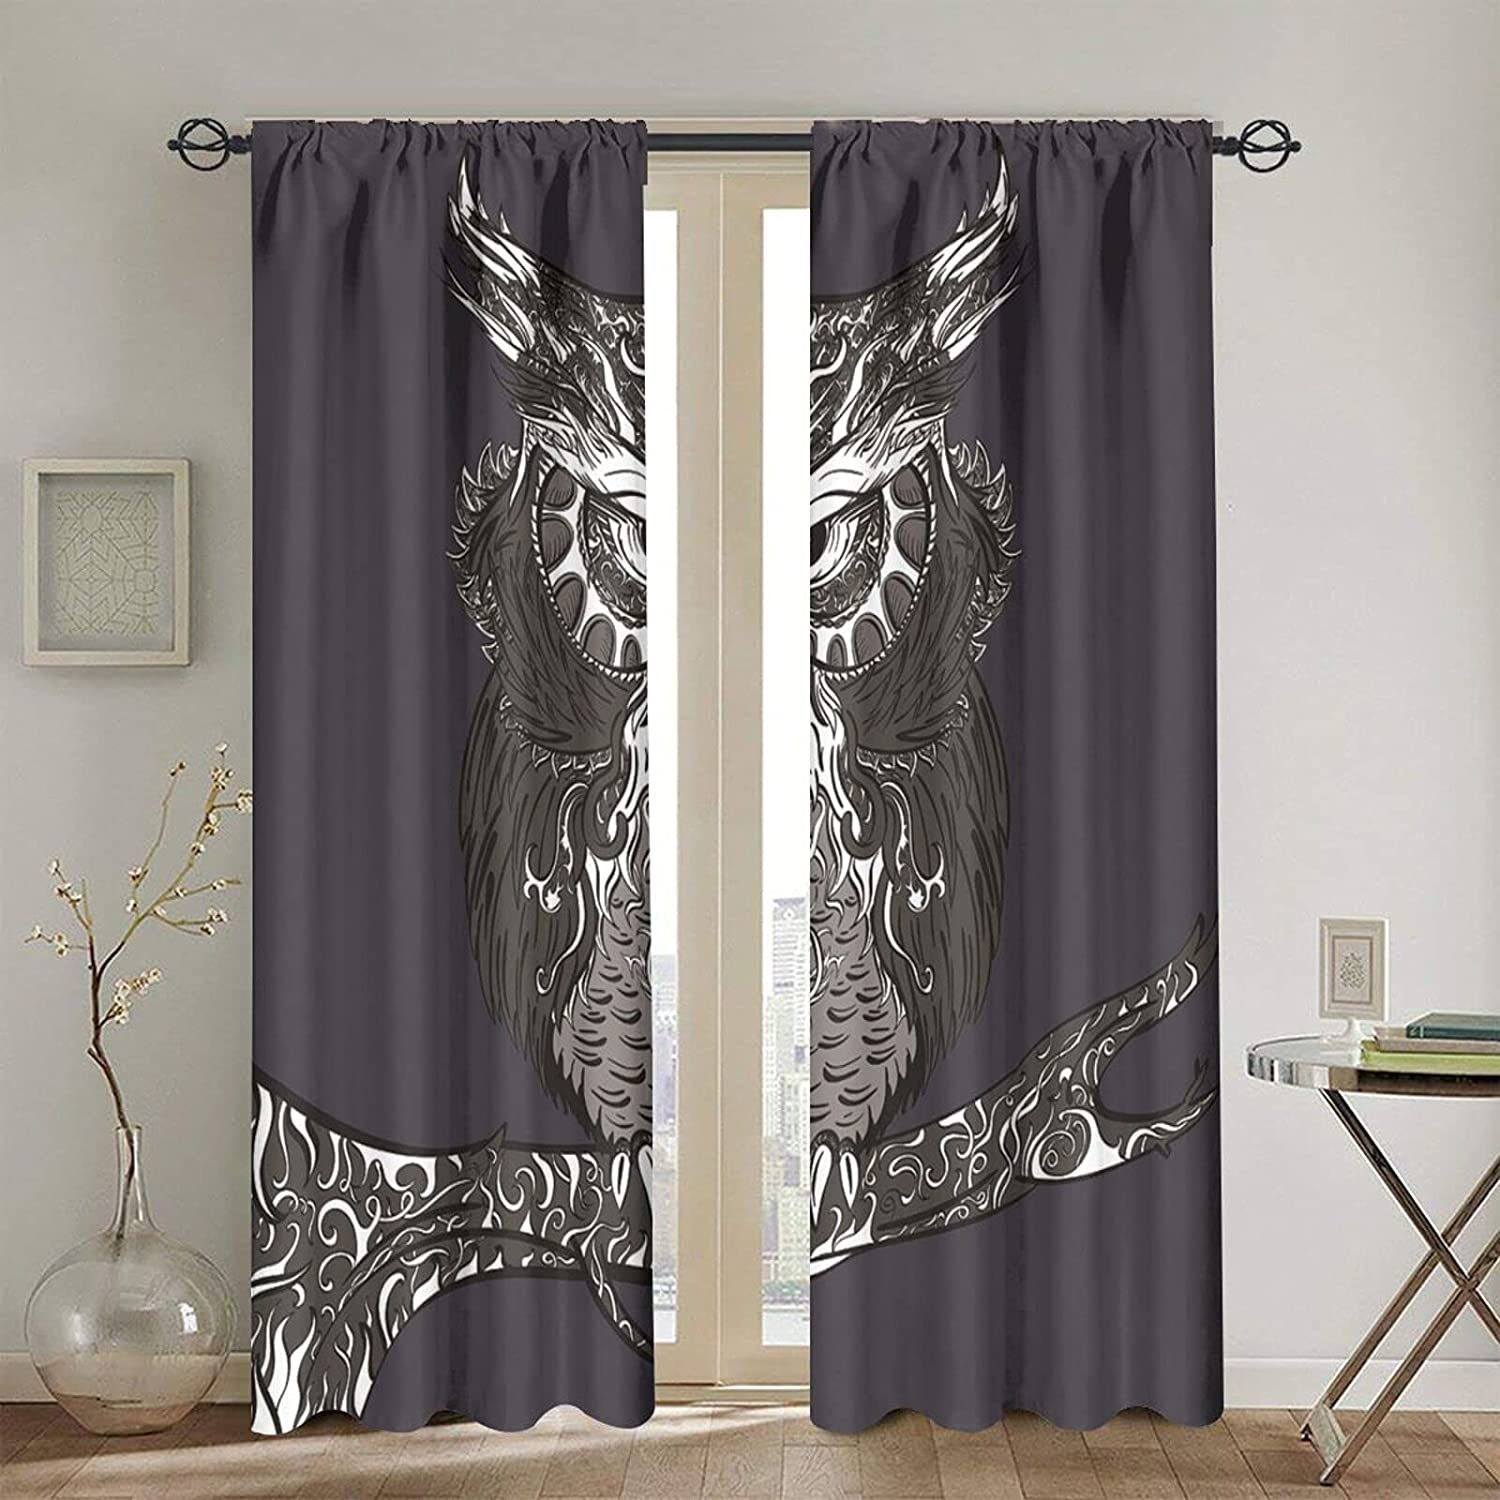 Blackout Max 57% OFF Curtains for Girls Boys online shop Cool Owl D Cartoon Branch Home